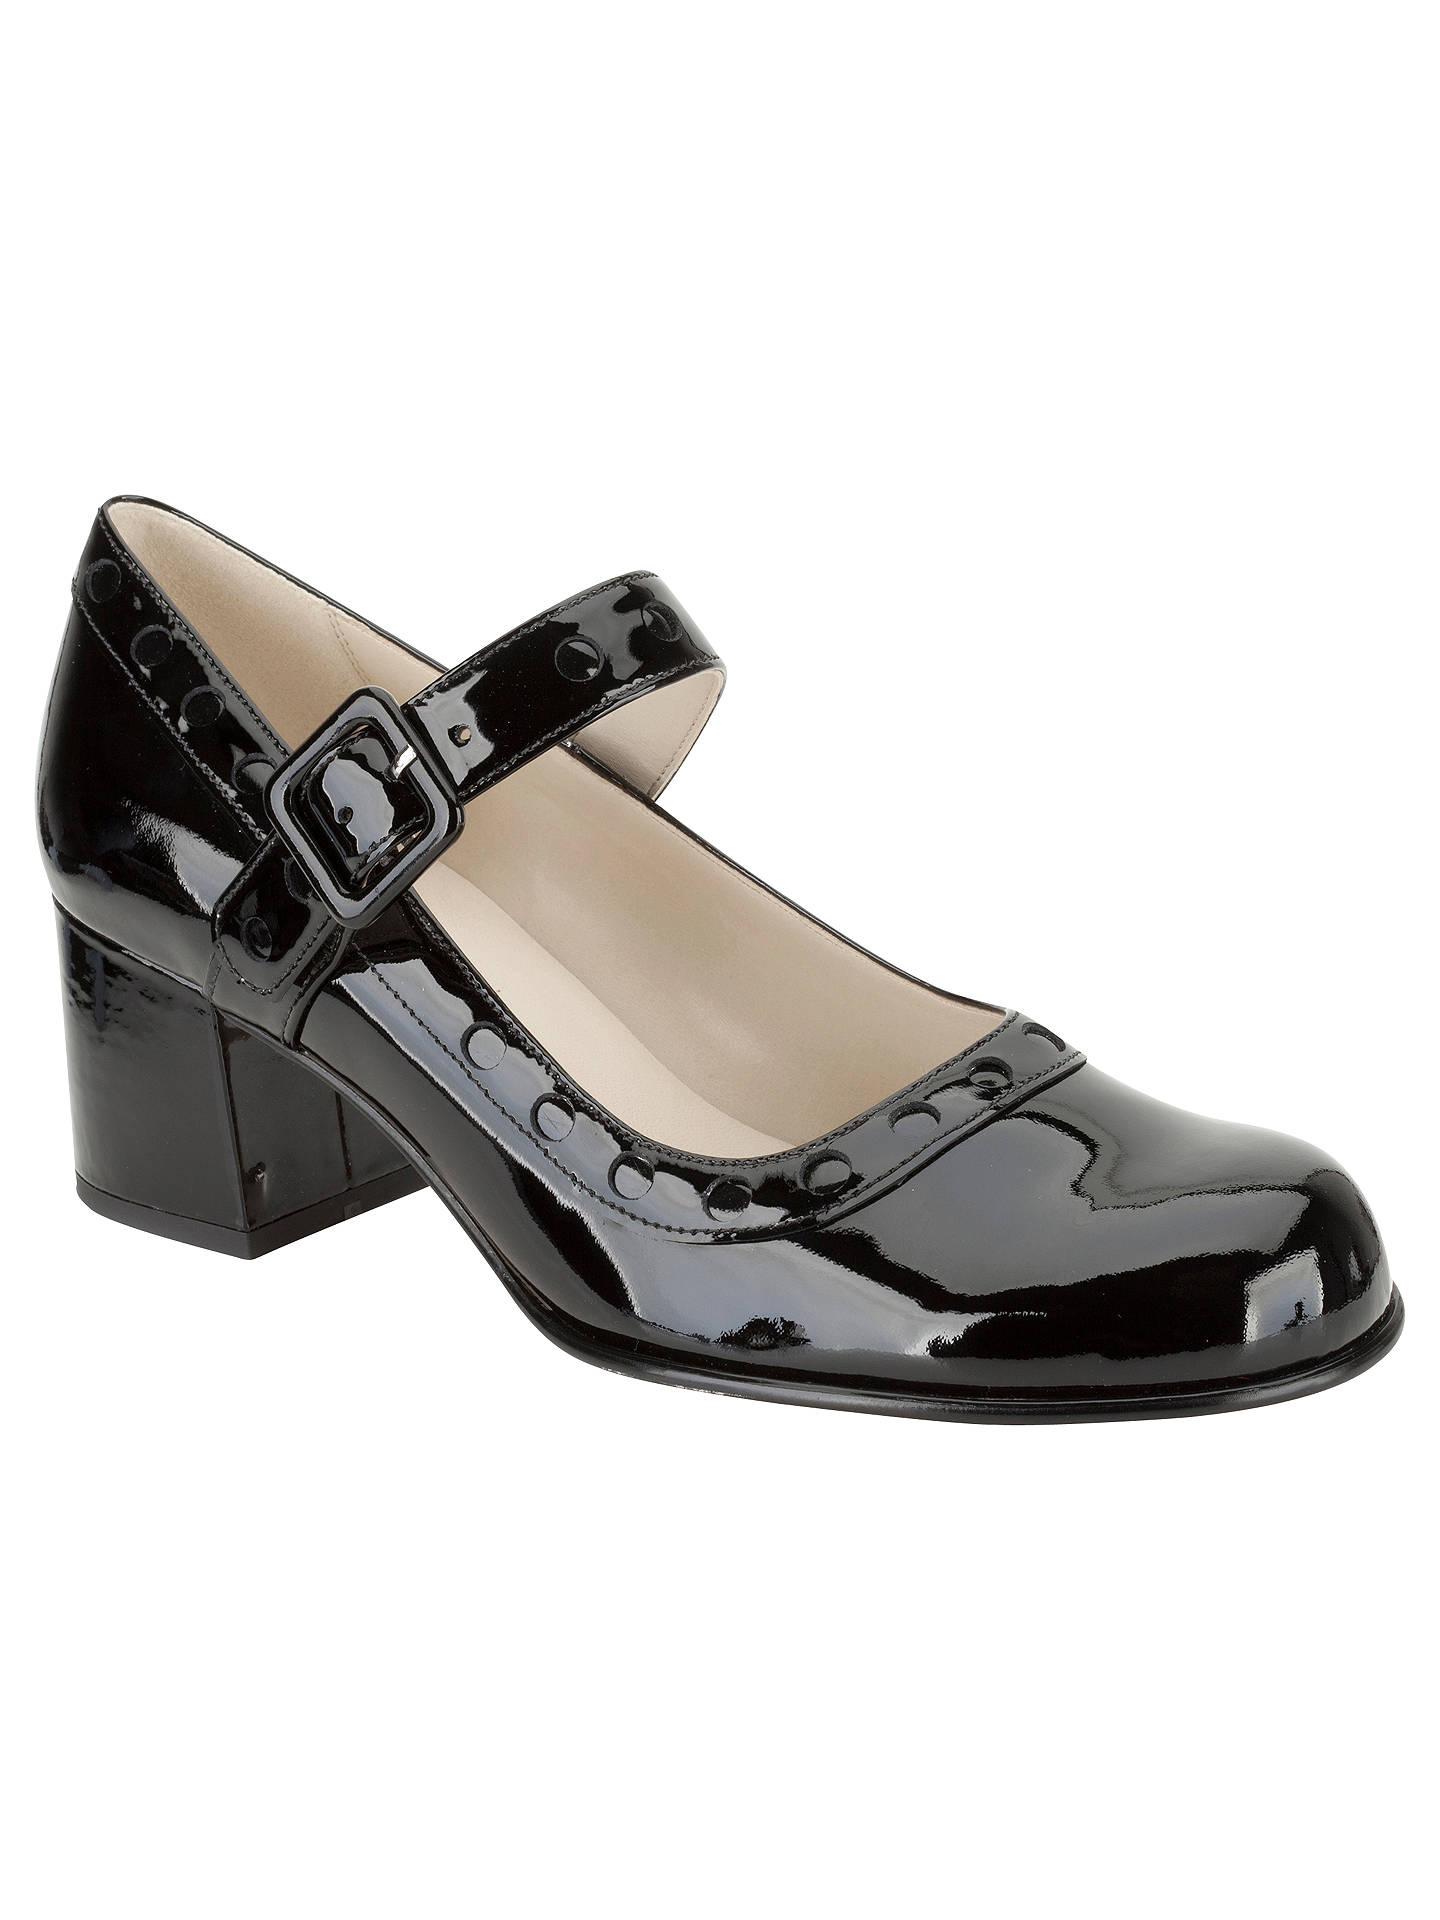 f4b87527bcf Clarks Orla Kiely Dorothy Patent Leather Mary-Jane Court Shoes at ...